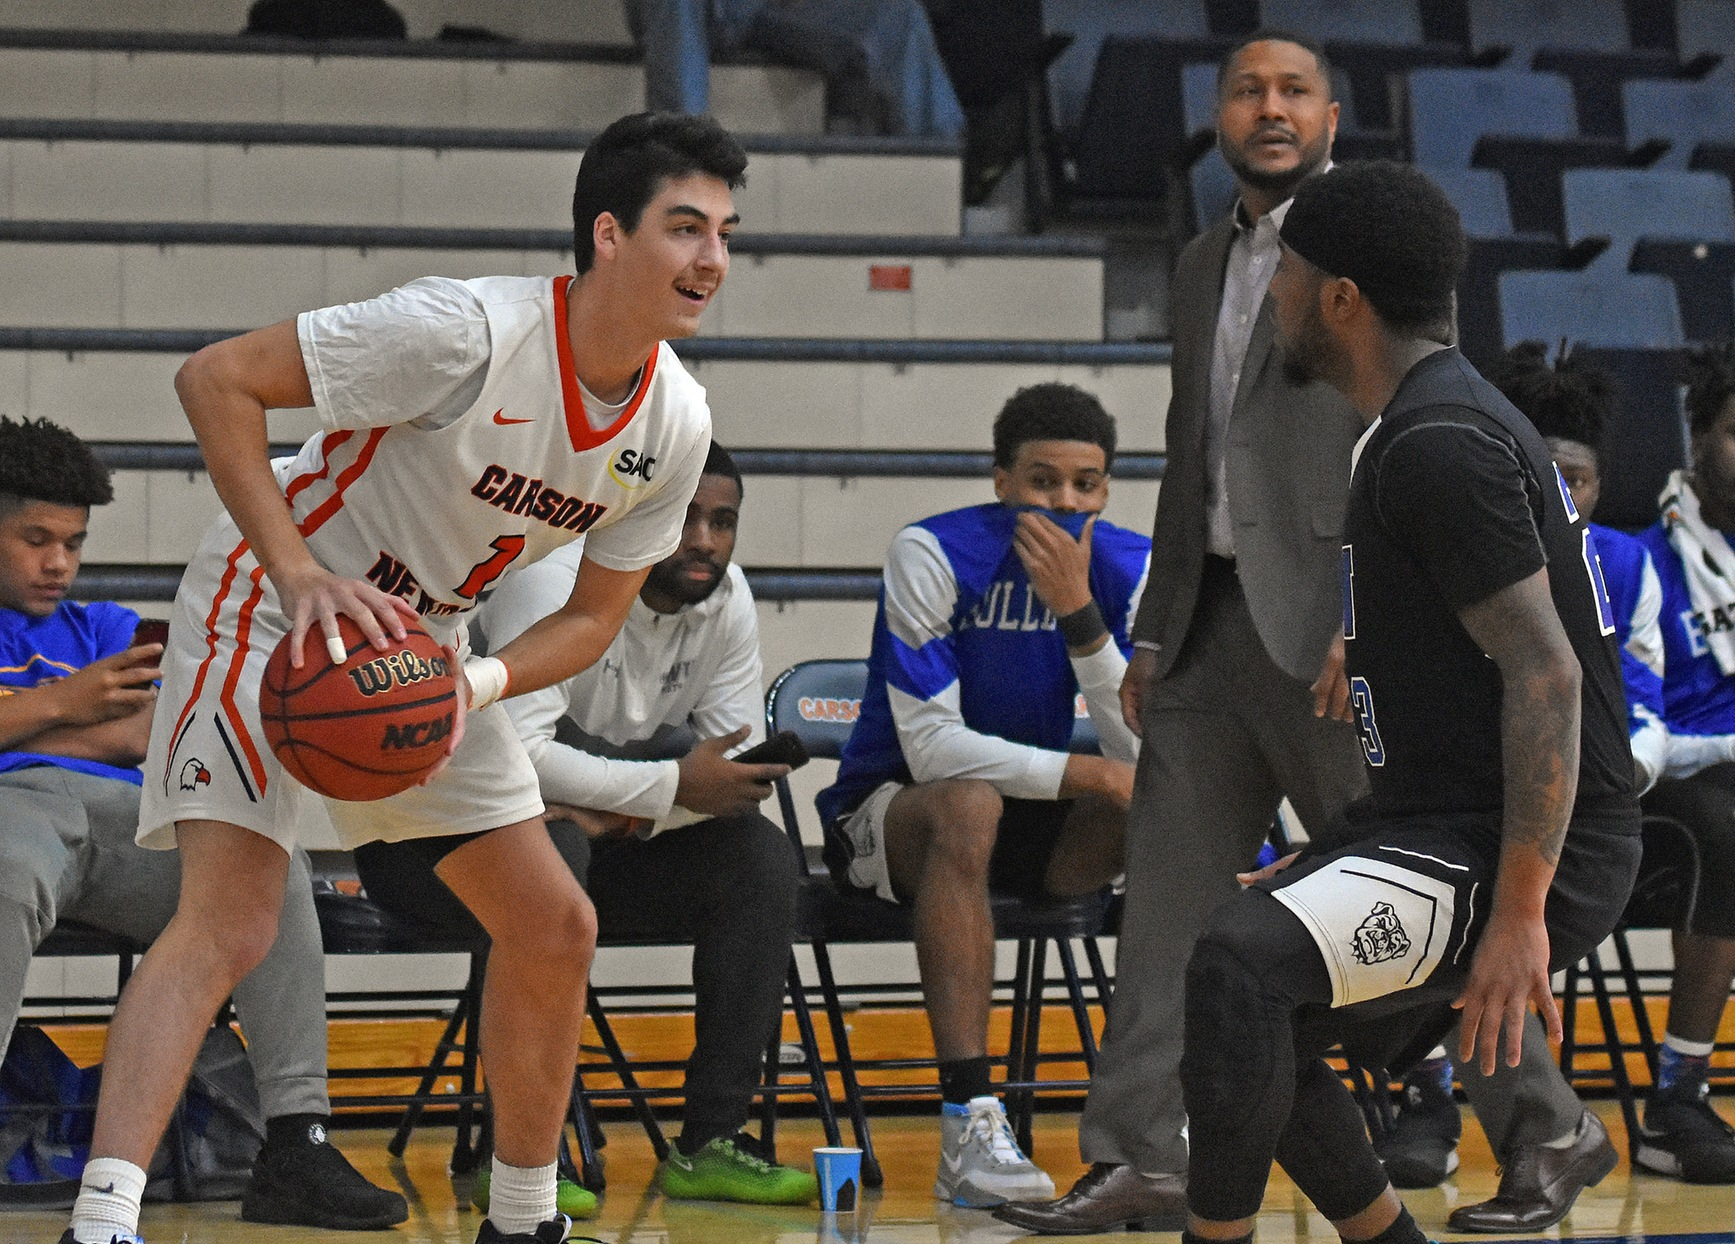 Eagles welcome league's top scoring offense, Catawba to Holt Fieldhouse